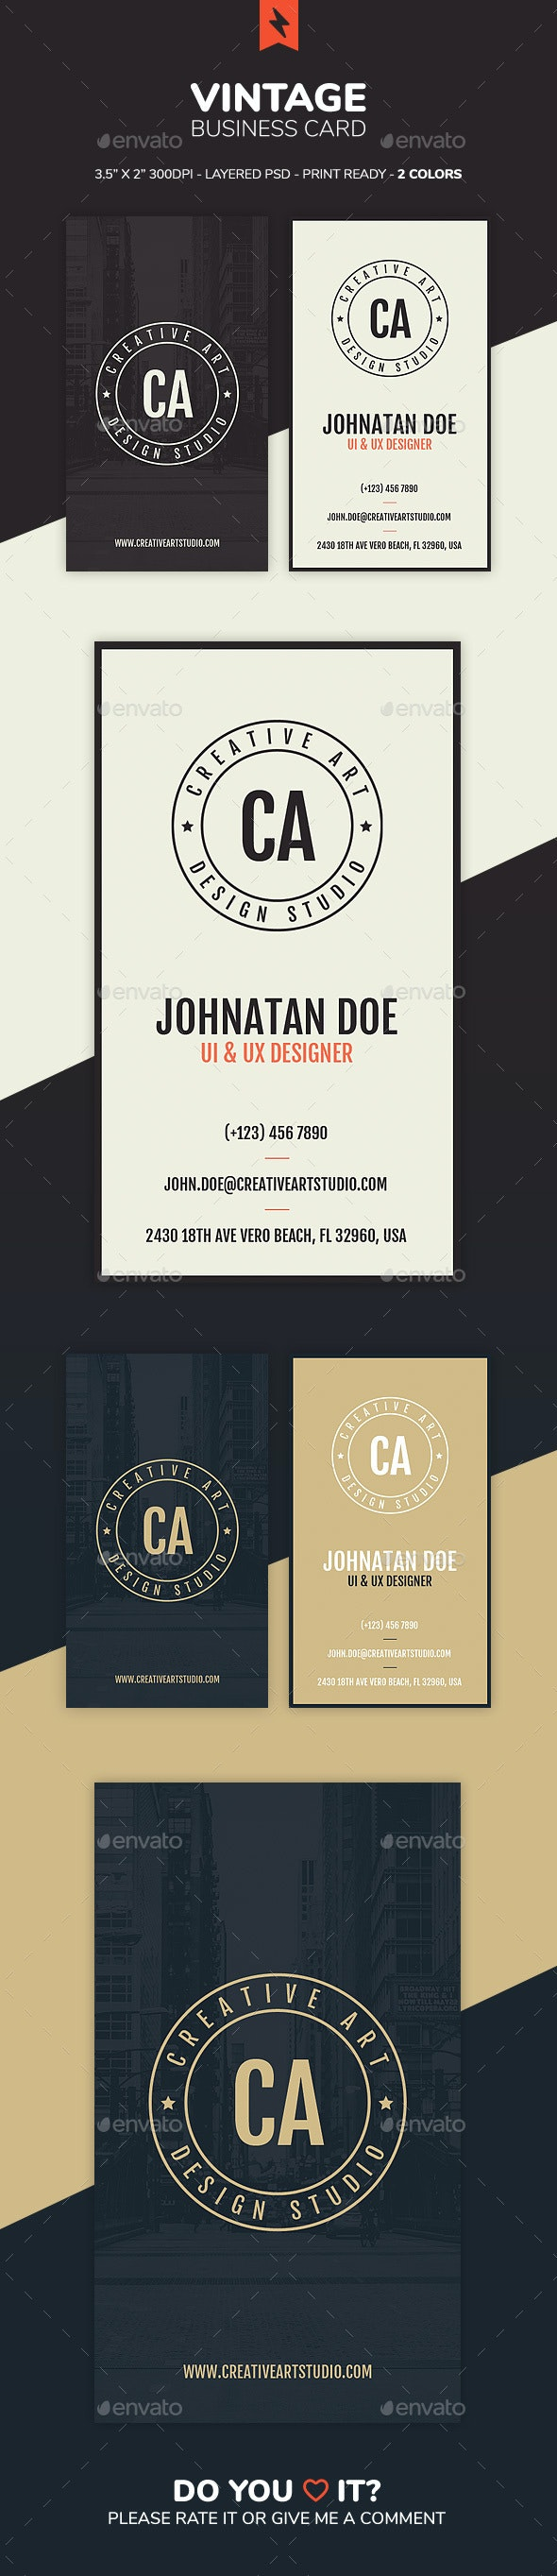 Vintage Business Card - Business Cards Print Templates